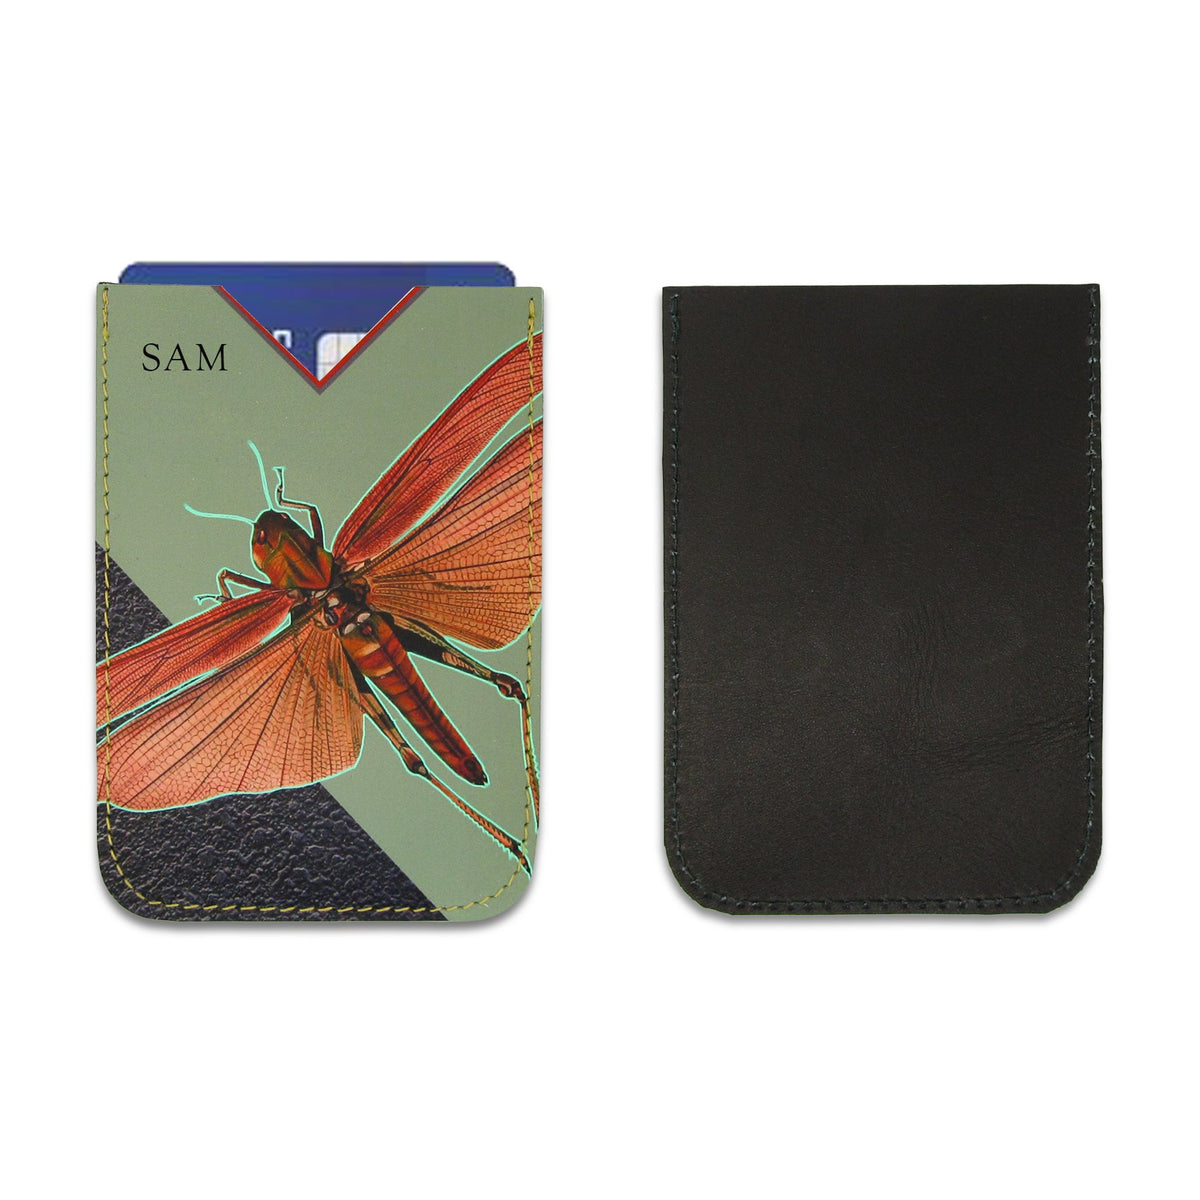 Leather Card Holder / Phone Sticker Wallet Pocket - Locust Wallet Tovi Sorga Standard Card Holder With personalisation Green